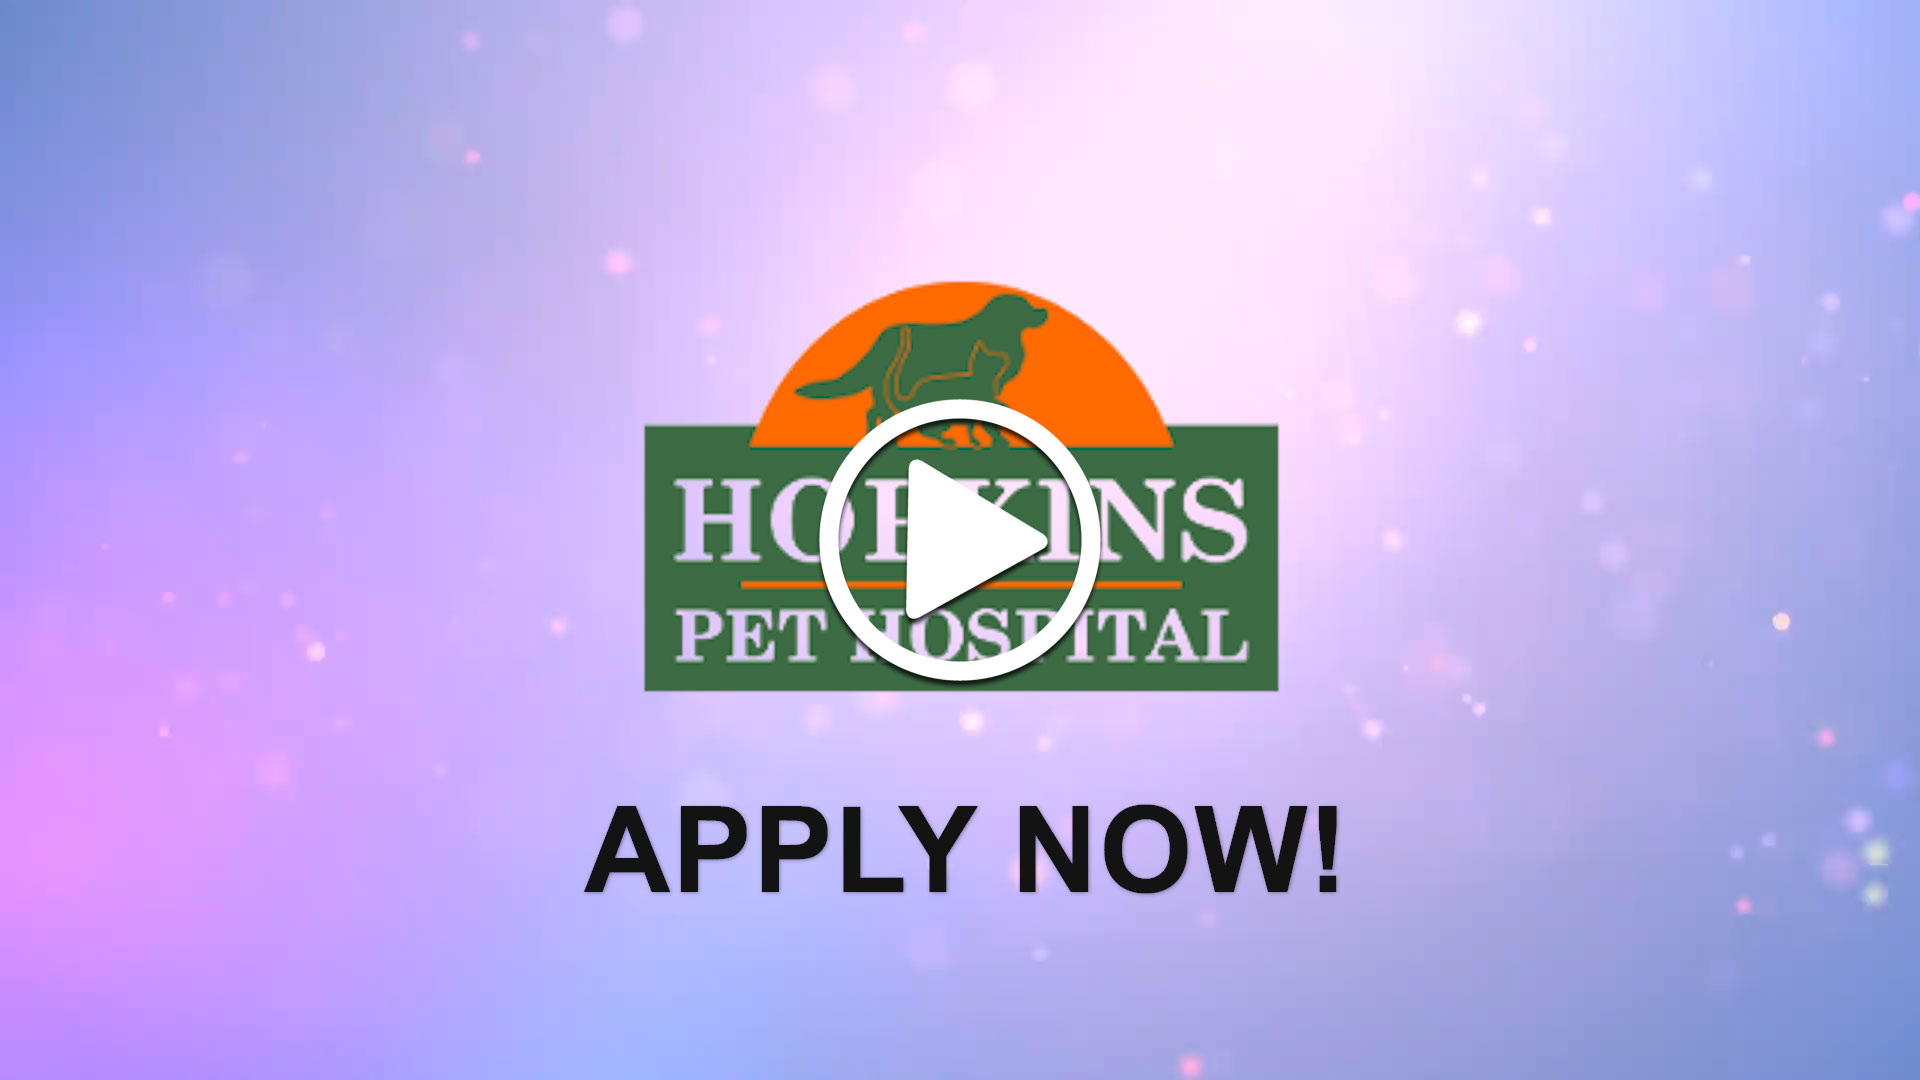 Watch our careers video for available job opening Veterinarian Fulltime in Hopkins, MN, USA